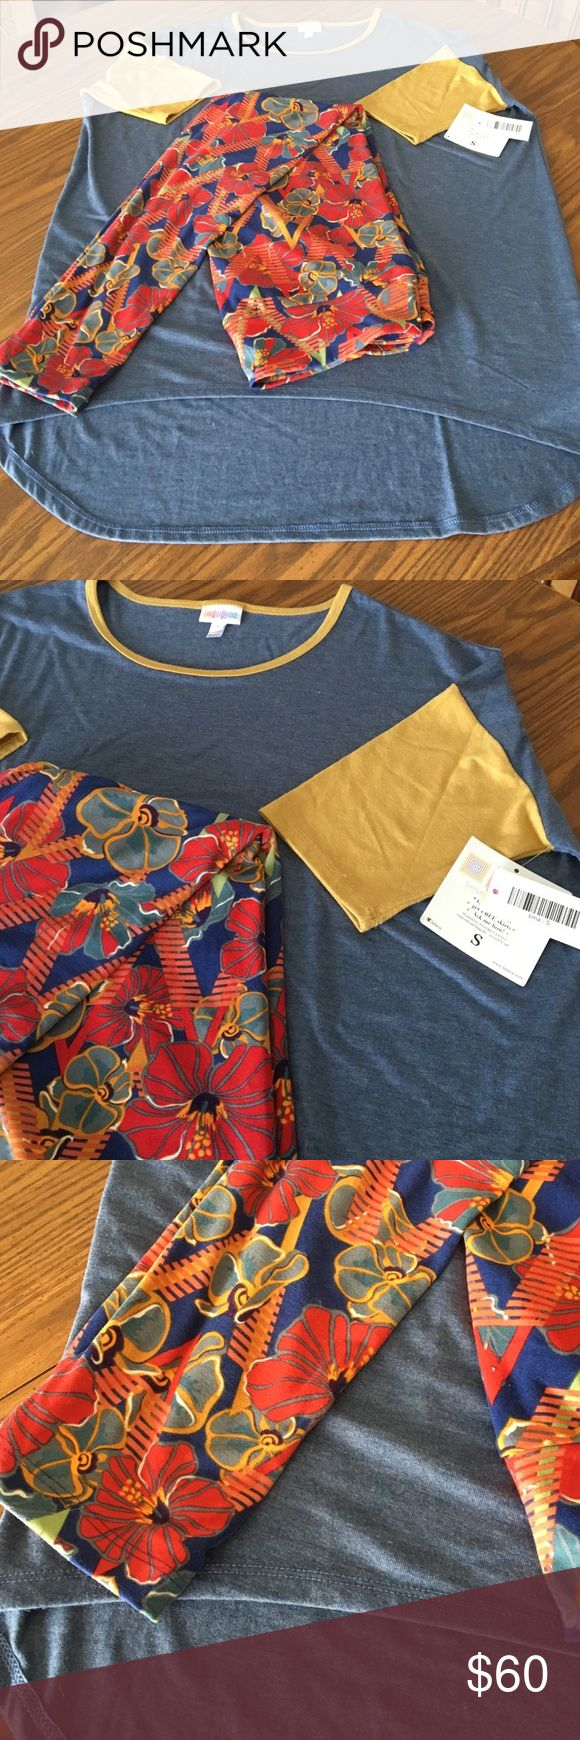 LULA ROE leggings and Irma top set Leggings are tall and curvy size which fit anyone, they are just not super tight. Top is Irma with high/low baseball style. Size small but fits up to 10-12 on top. Brand new, never worn. Leggings do not have tags. Never worn never washed LuLaRoe Other